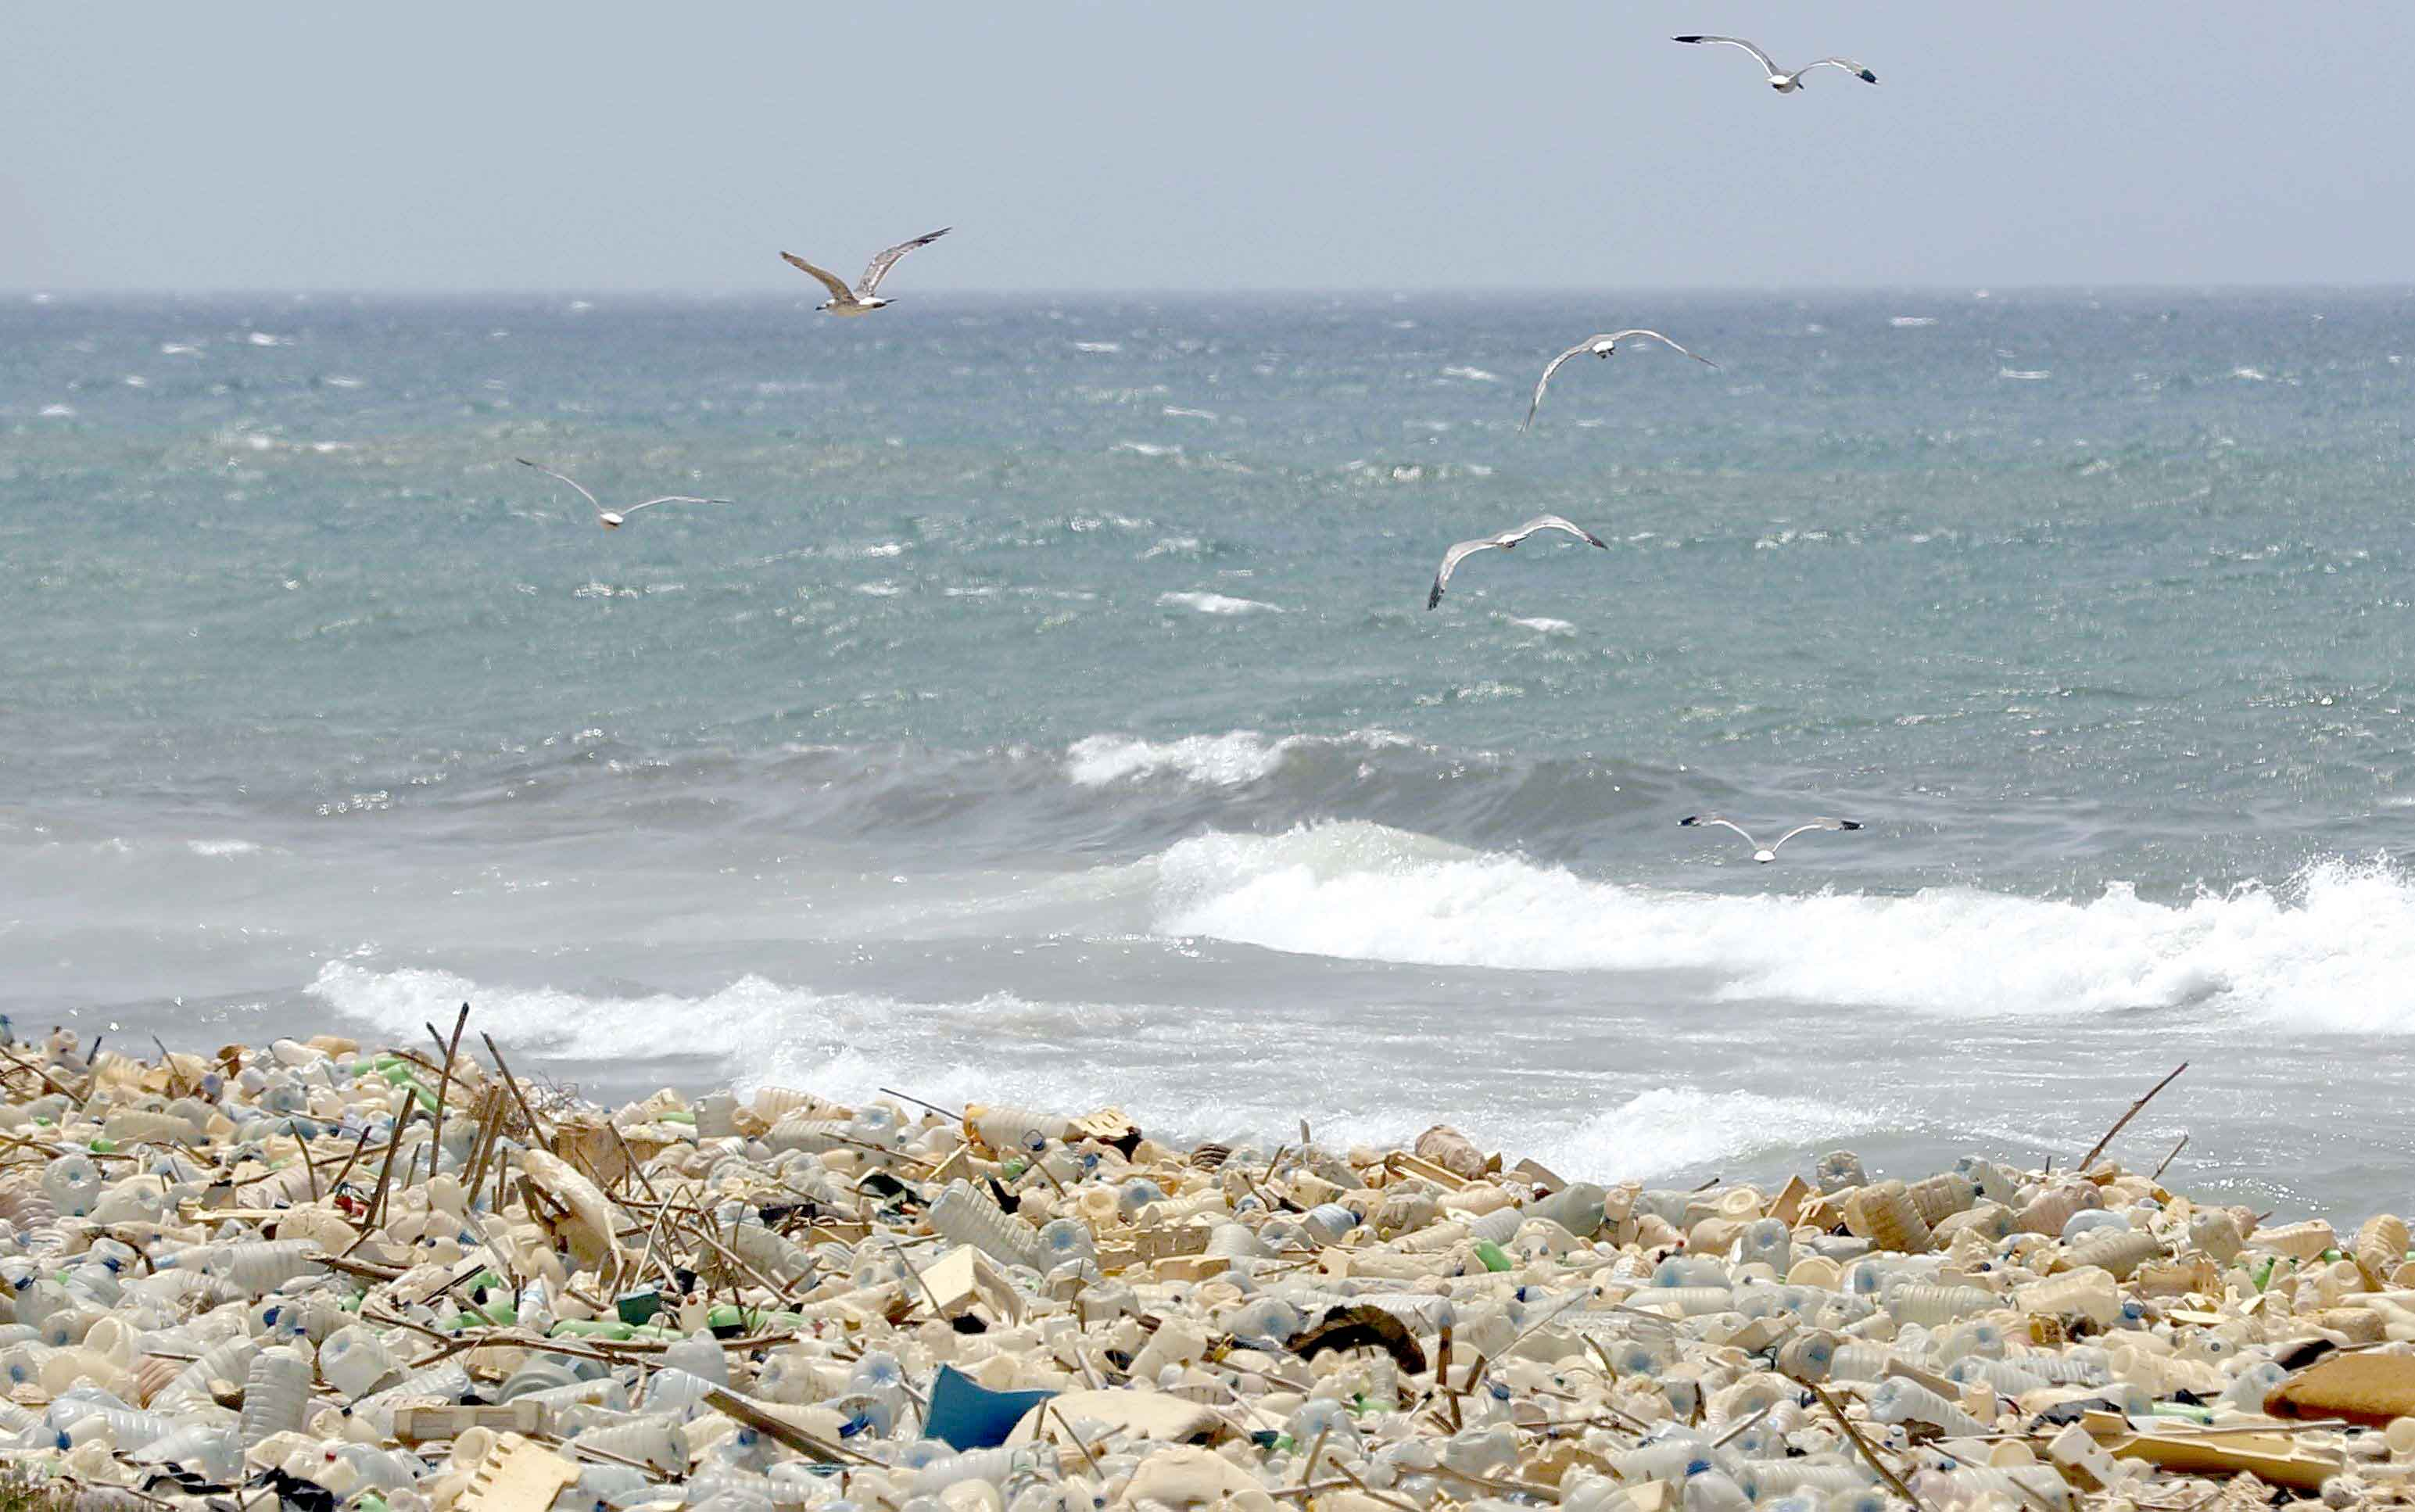 Environmental dilemma. Seagulls search for food near a sewage discharge area next to piles of plastic bottles on the seaside of Ouzai in Lebanon. (AFP)